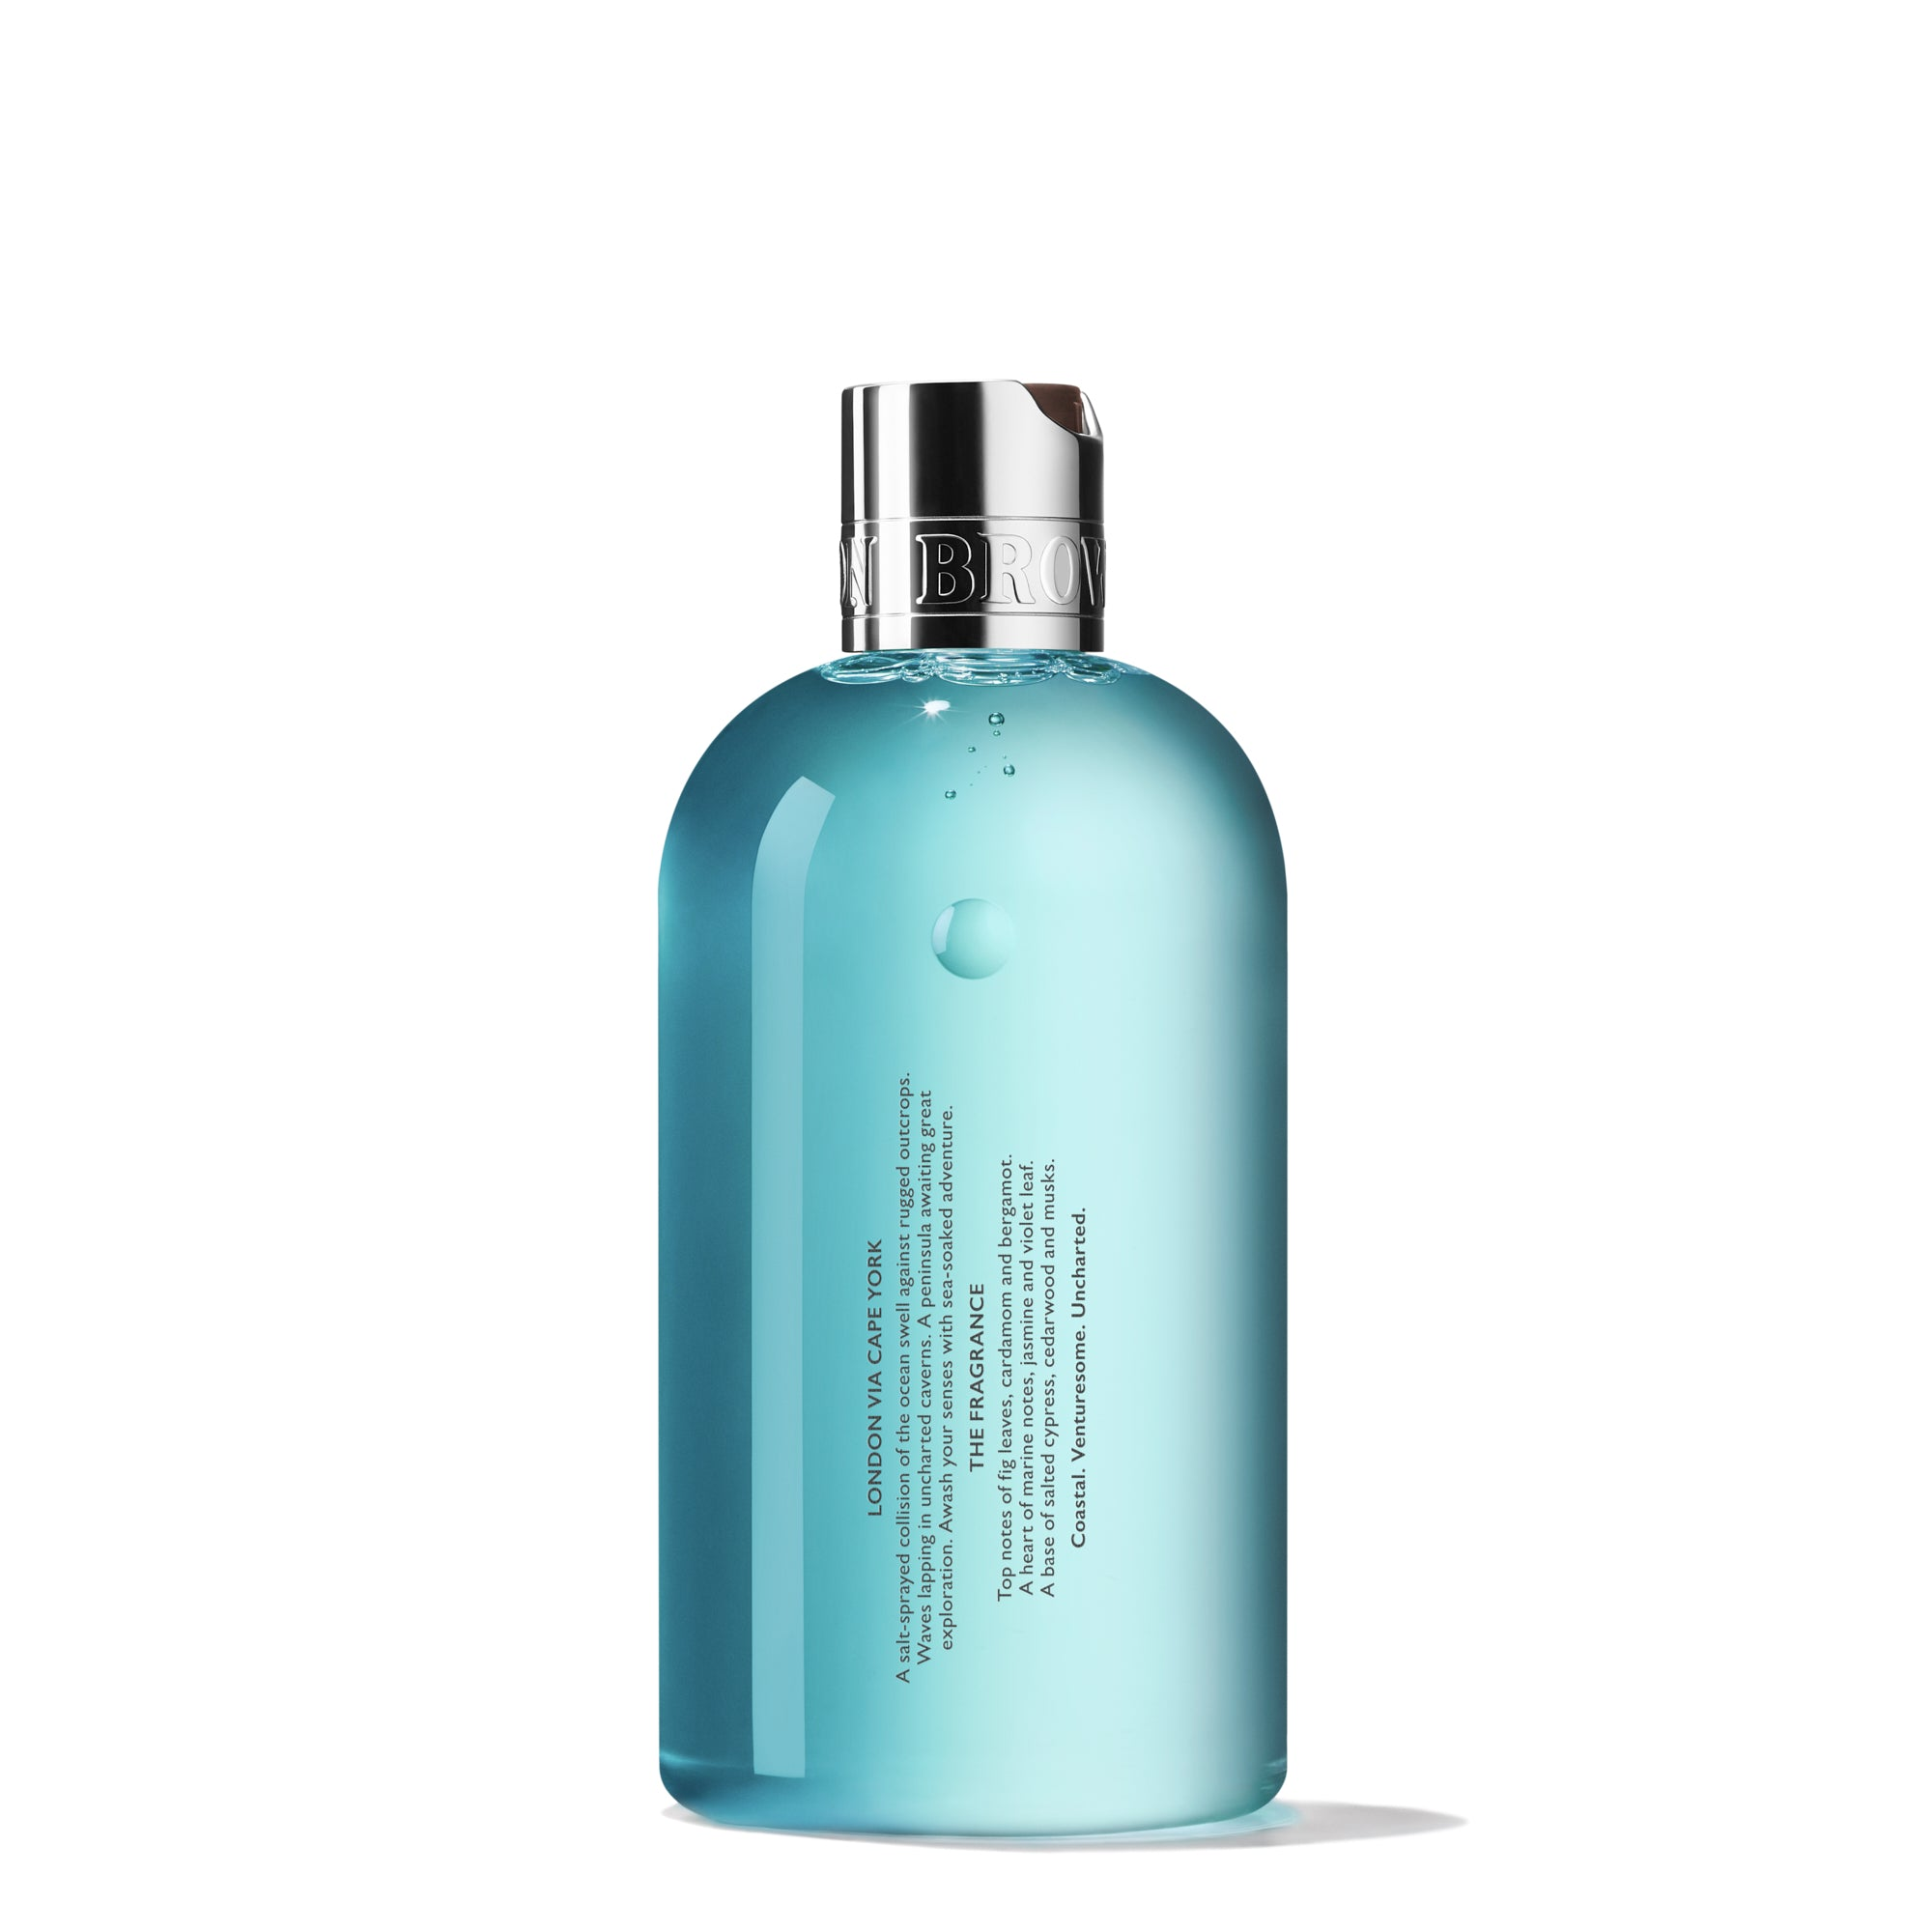 Coastal Cypress & Sea Fennel Bath & Shower Gel